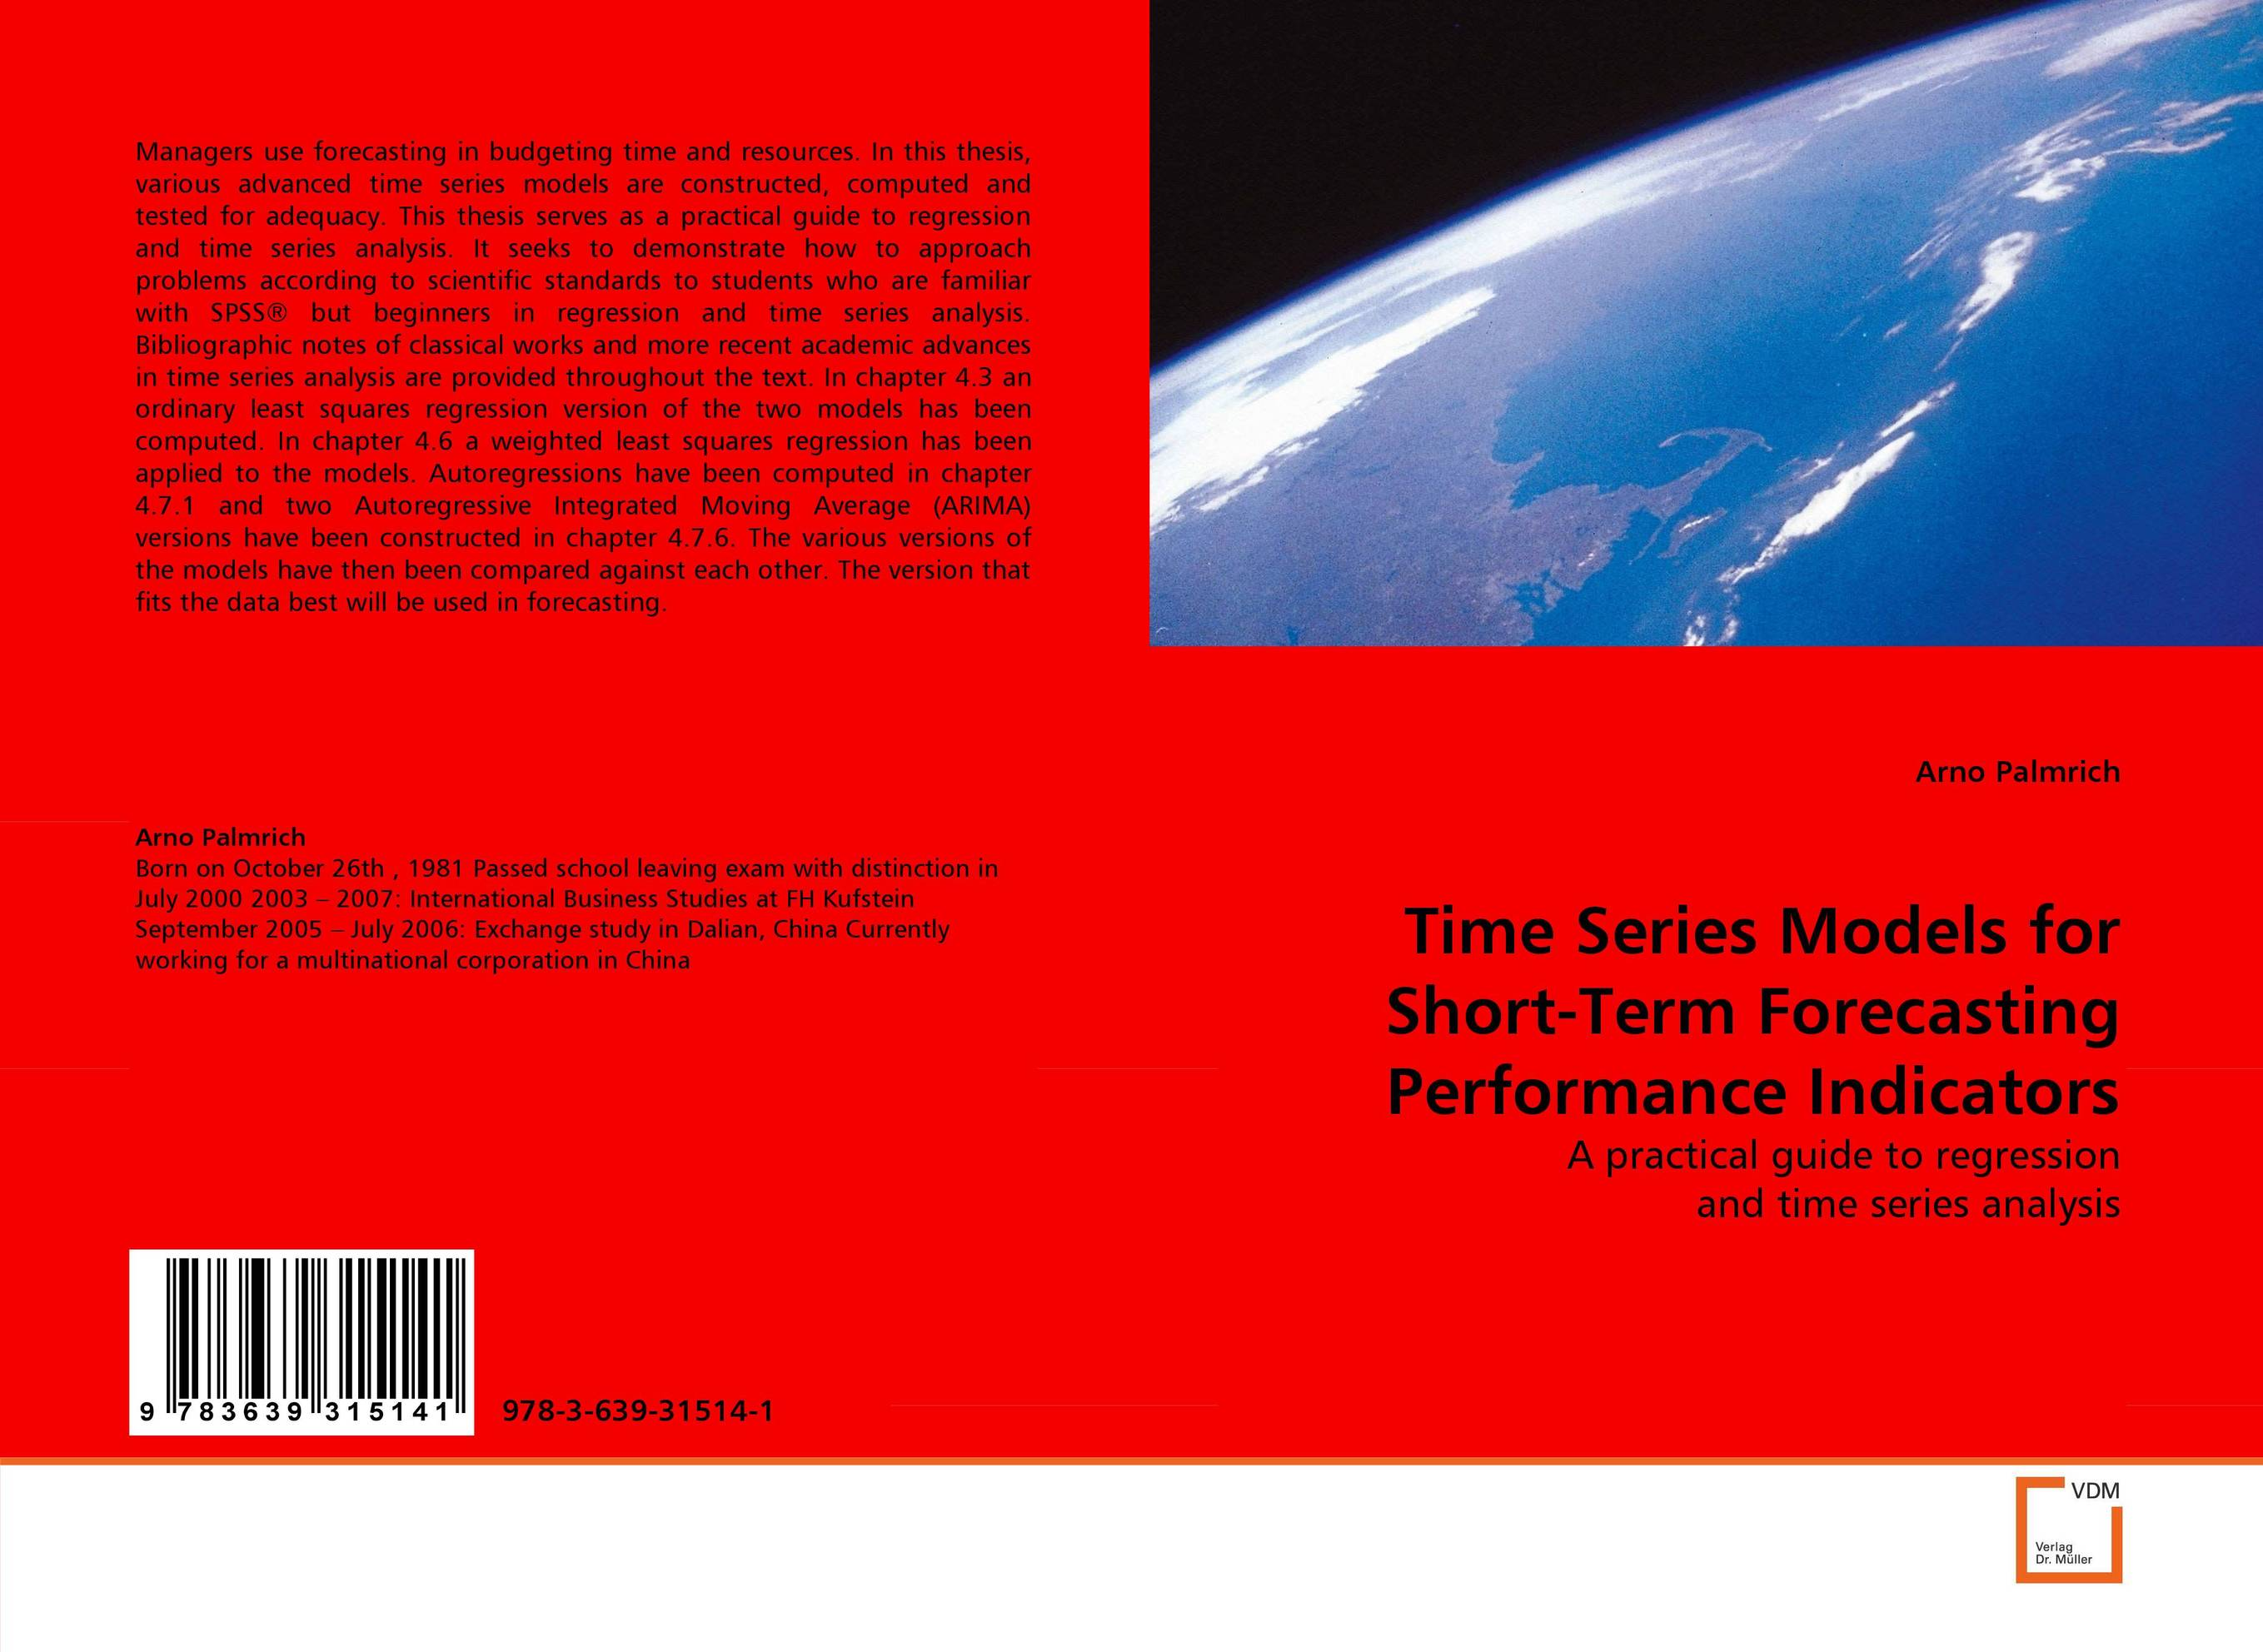 Time Series Models for Short-Term Forecasting Performance Indicators linear regression models with heteroscedastic errors